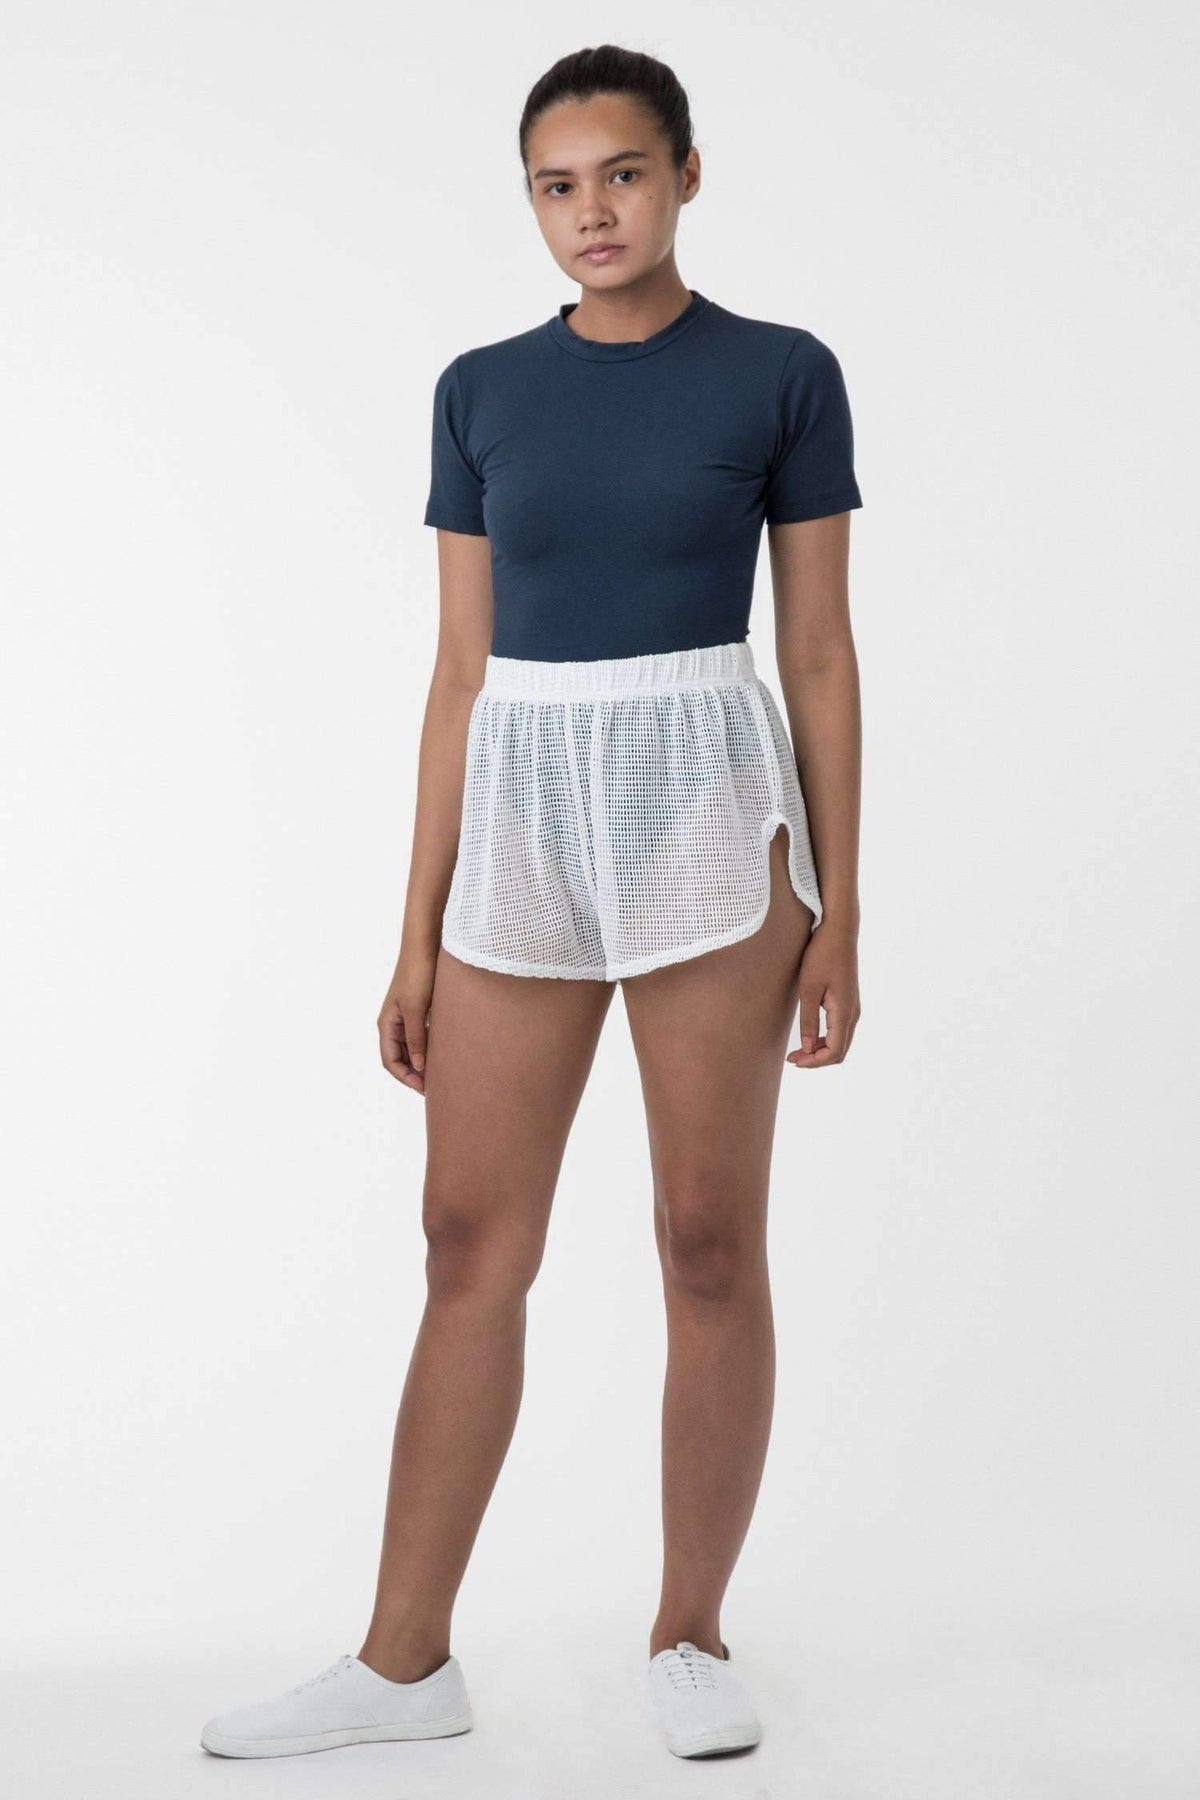 RIN304 - Cotton Fishnet Shorts Shorts Los Angeles Apparel Natural S